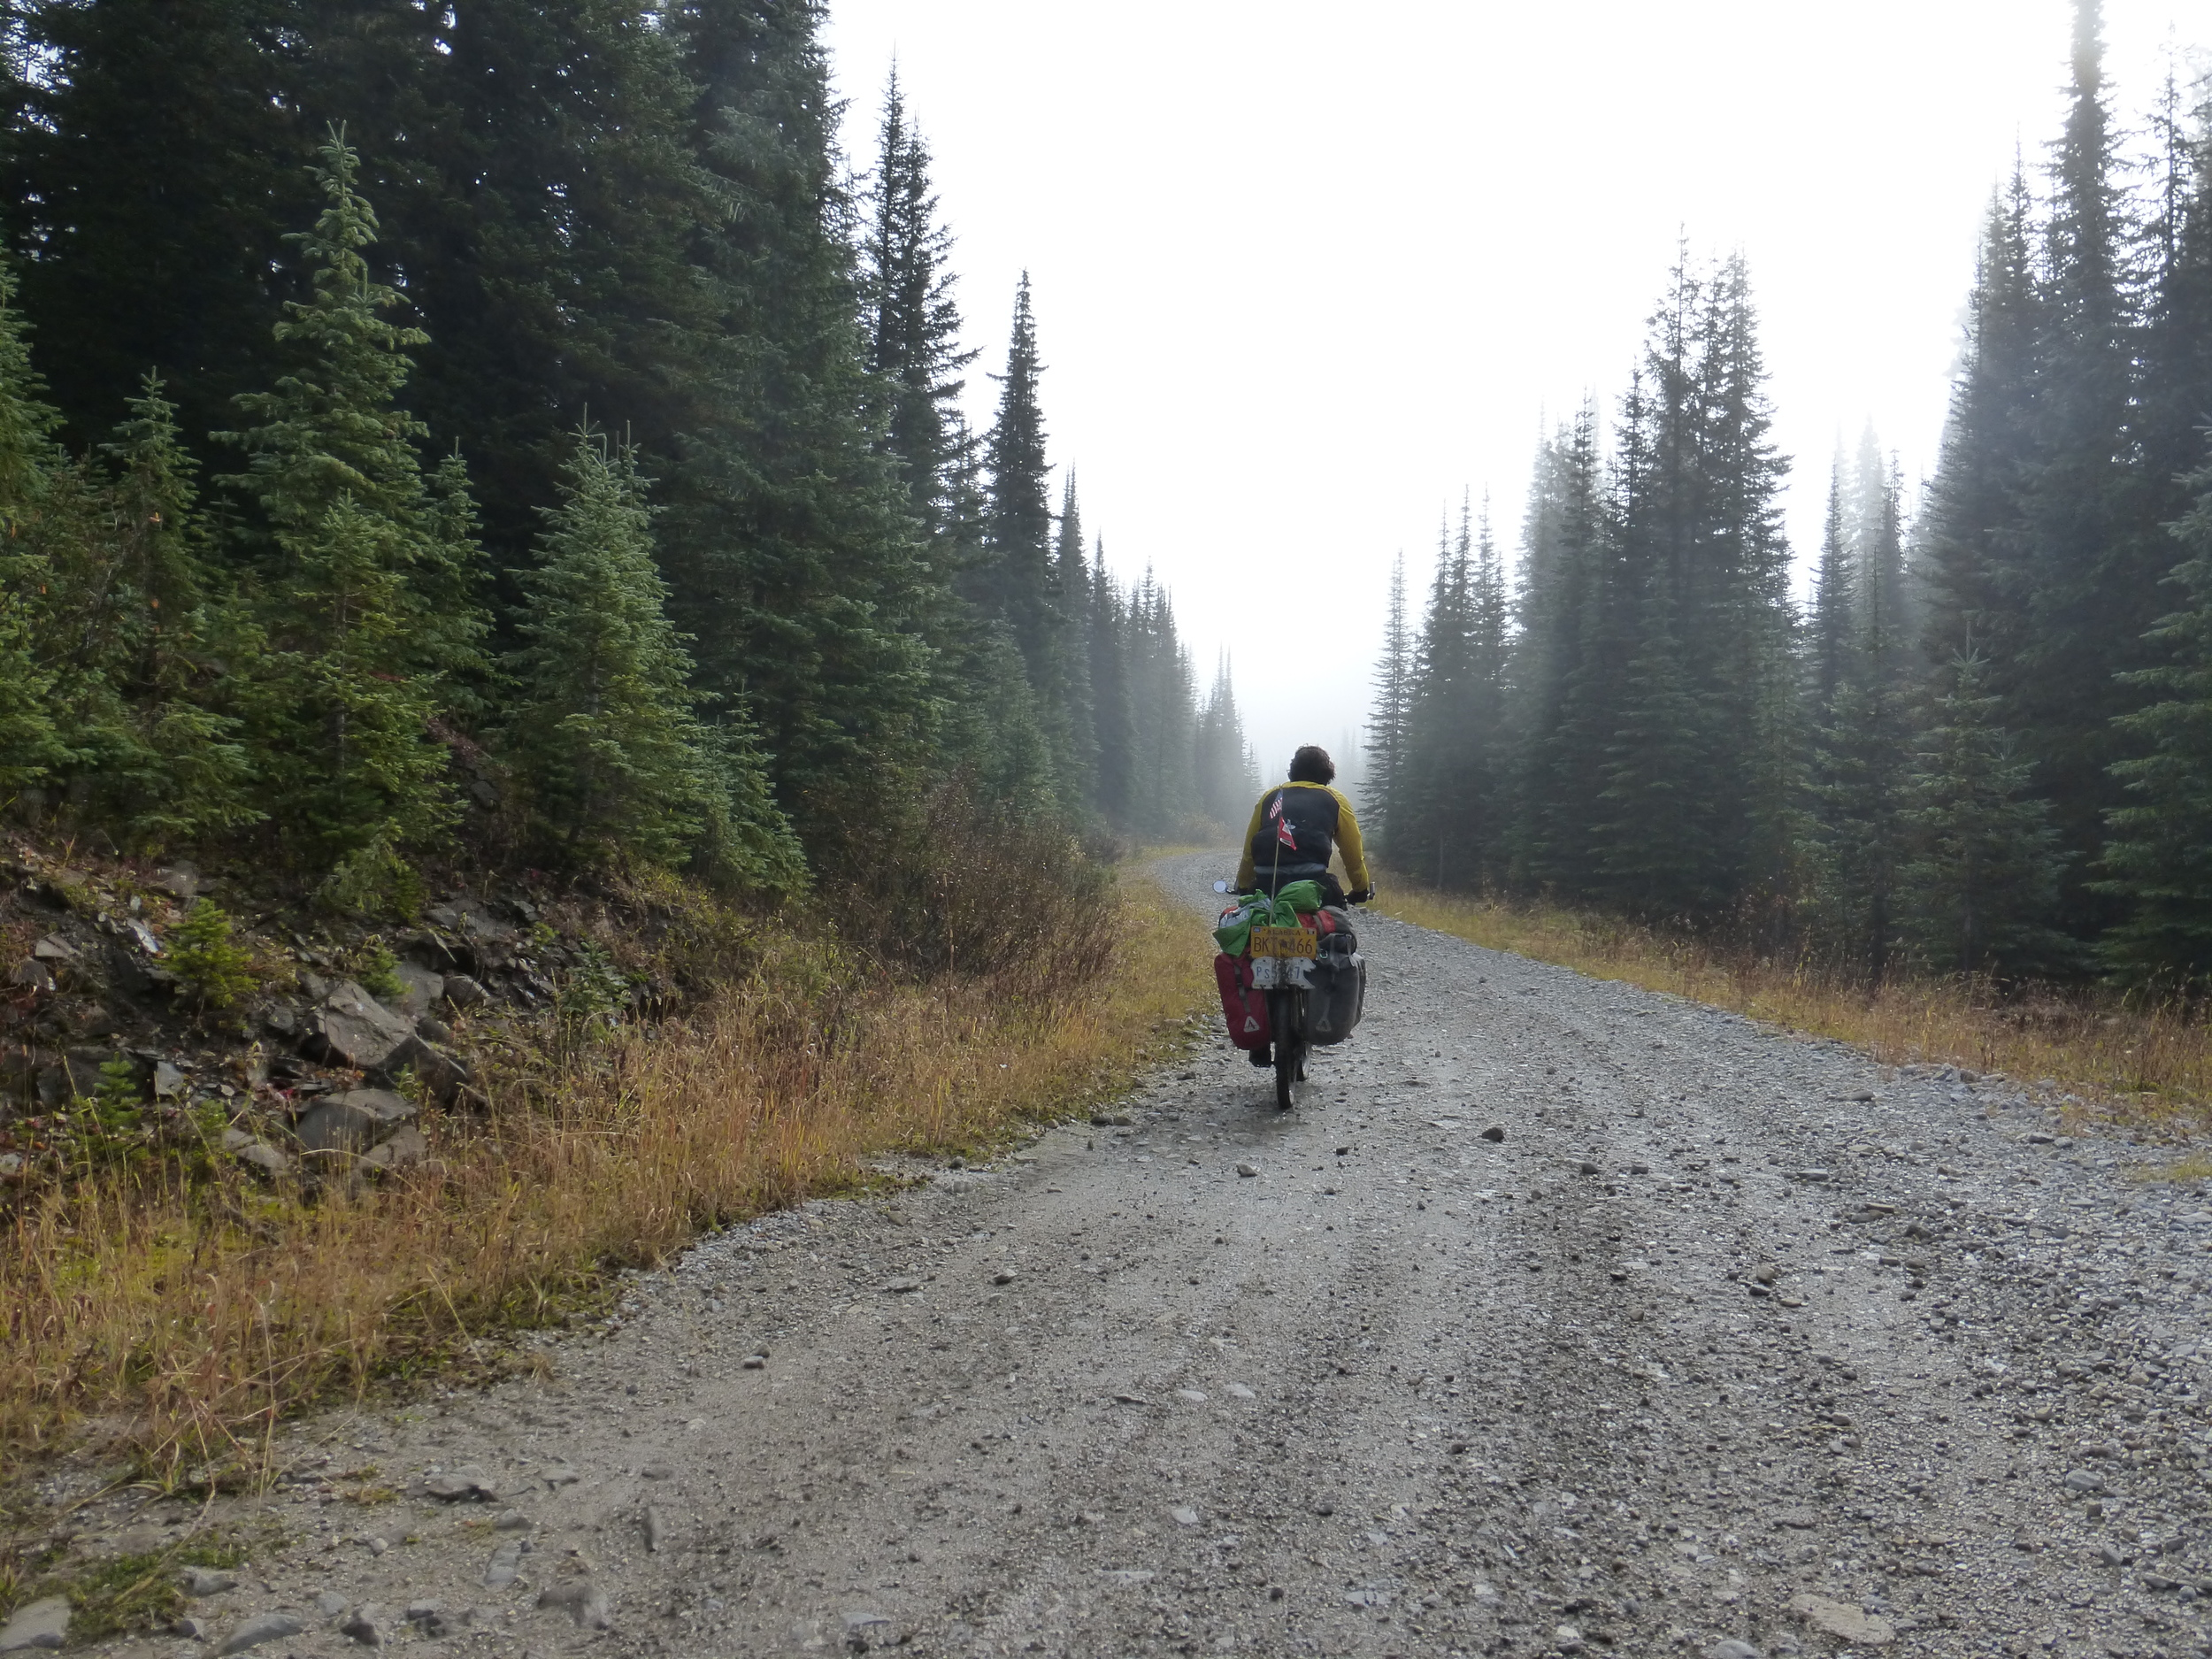 The misty Flathead Pass 1/3. (Click to see full size)